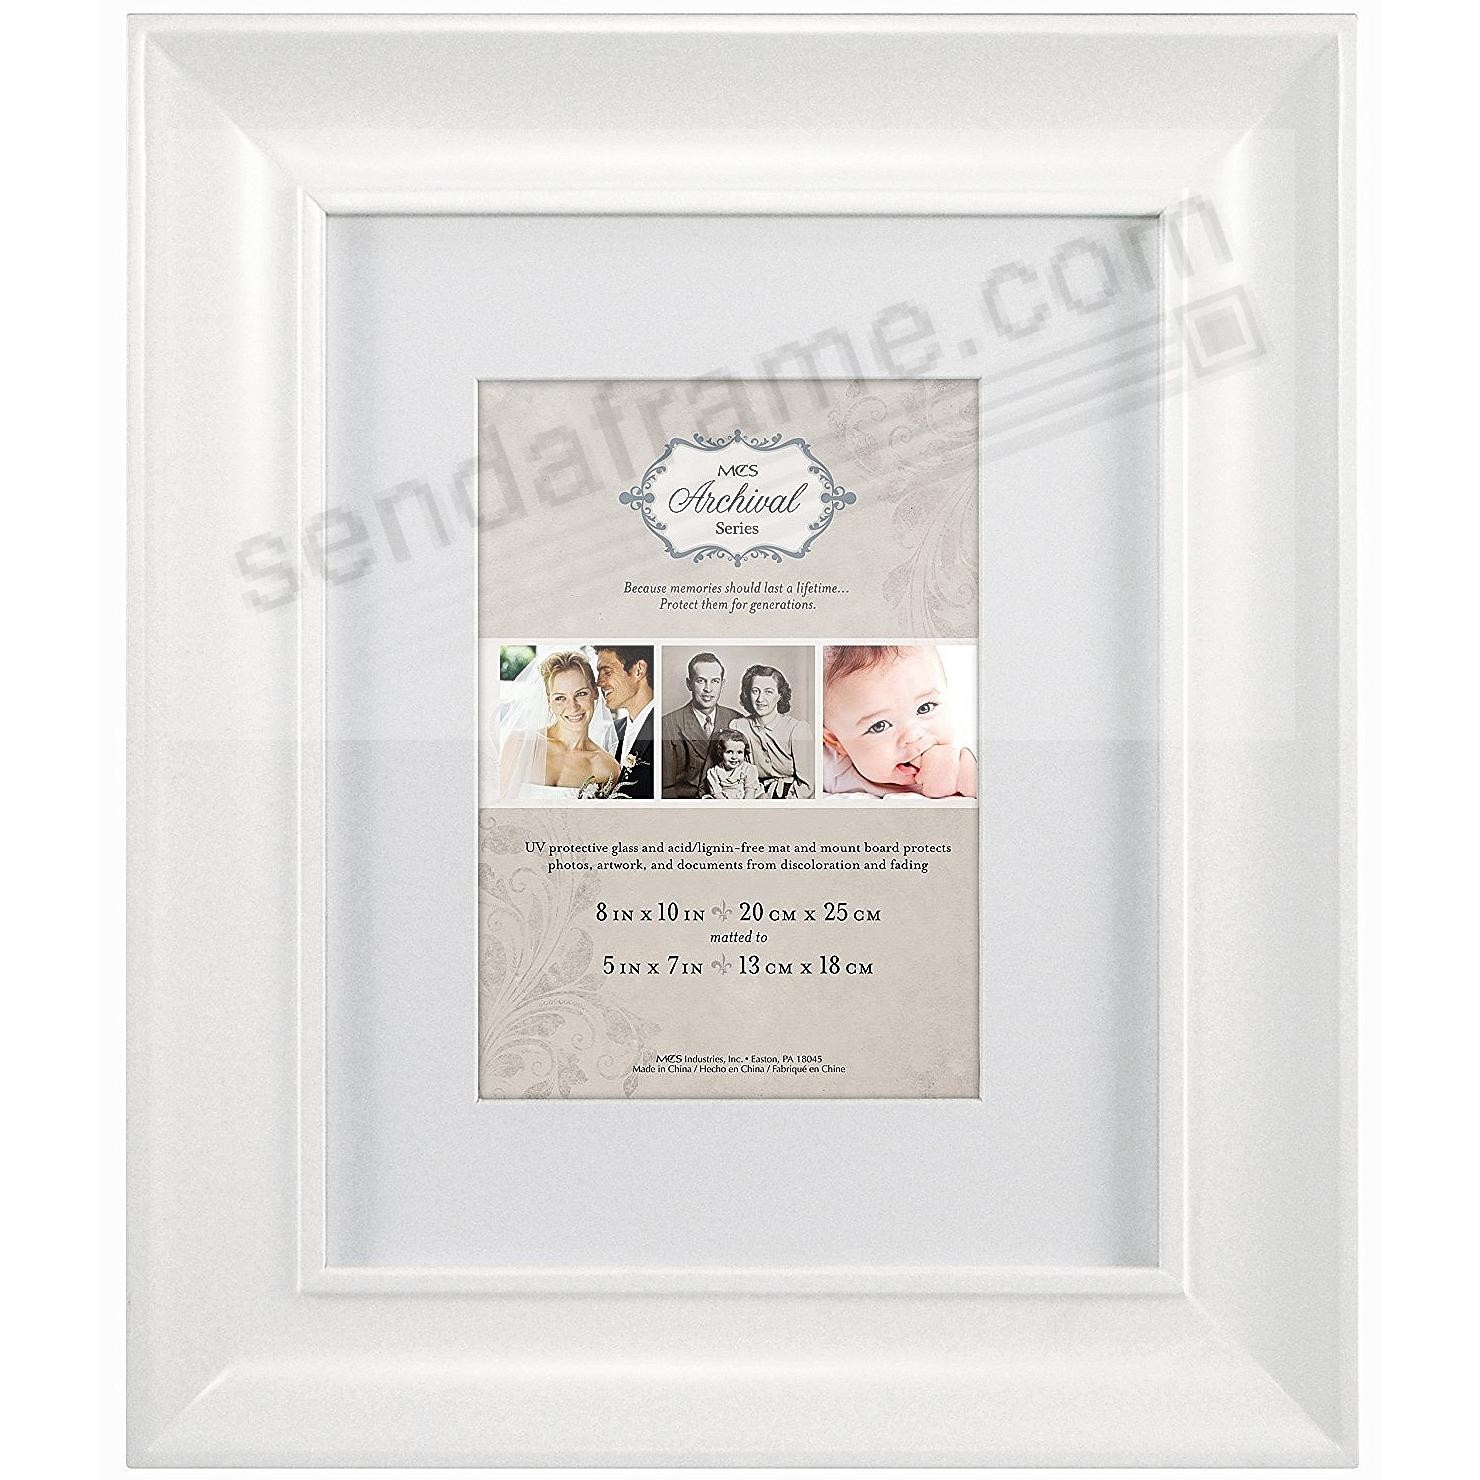 White Archival Matted Wood Frame 8x105x7 By Mcs Picture Frames